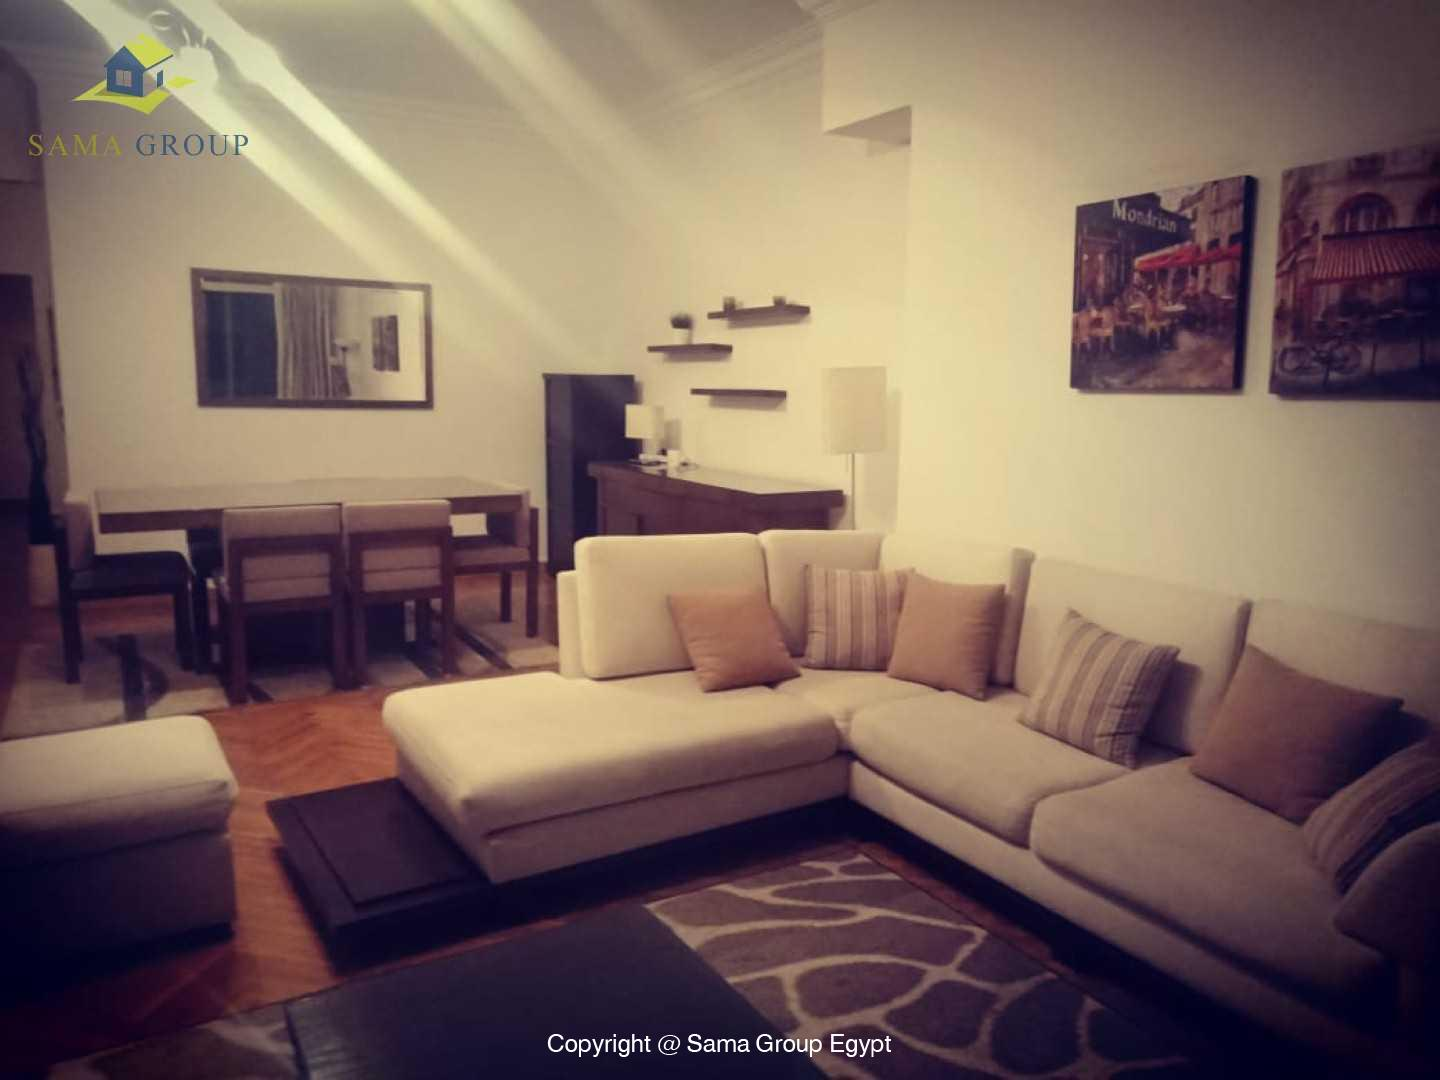 Modern Furnished Apartment For Rent In Maadi Sarayat,Modern Furnished,Apartment NO #5